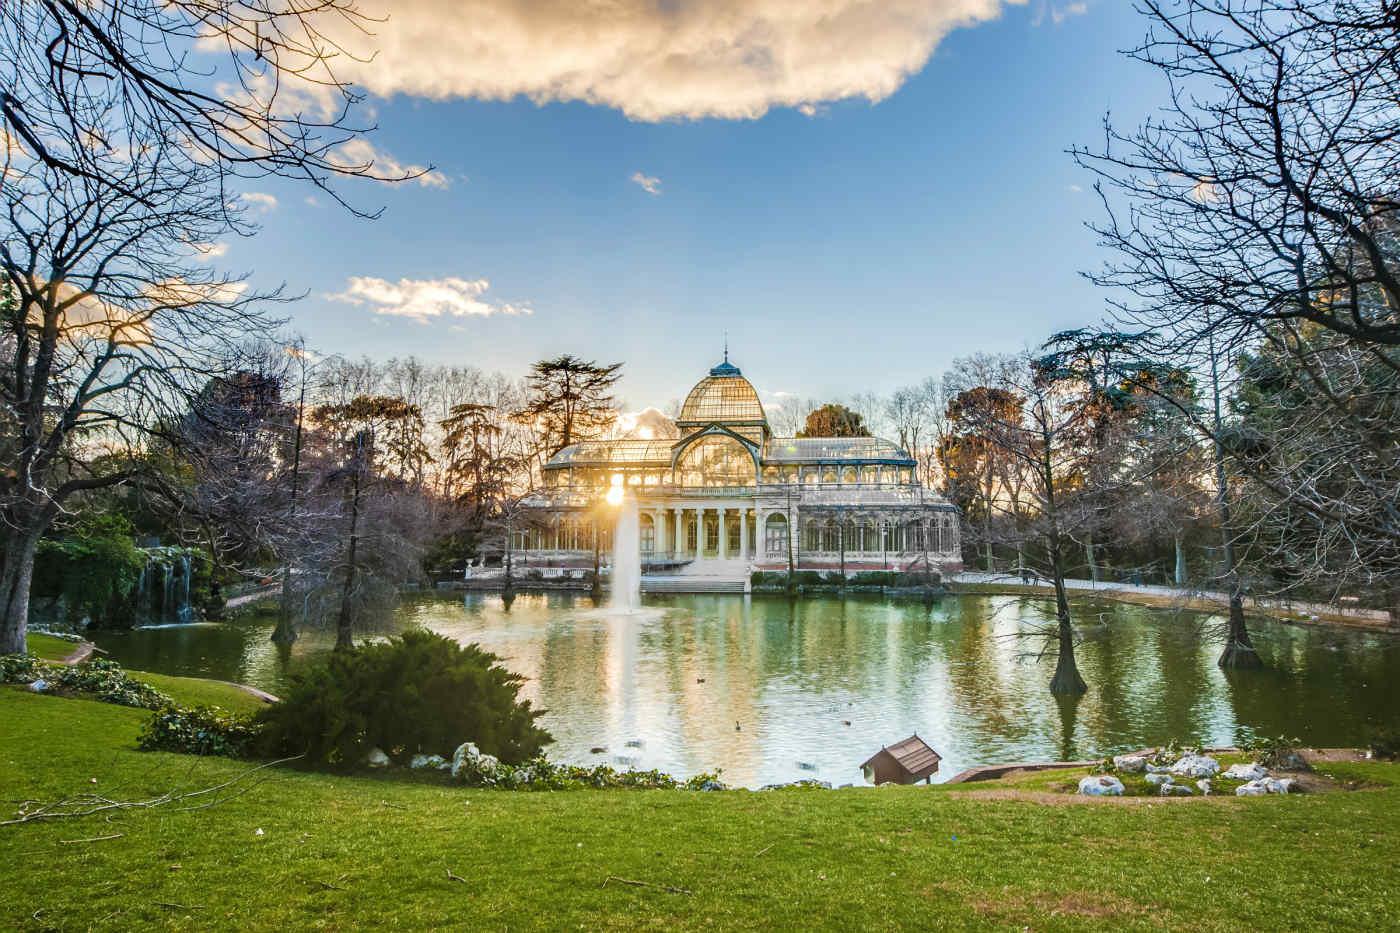 Palacio de Cristal at Buen Retiro Park in Madrid, Spain